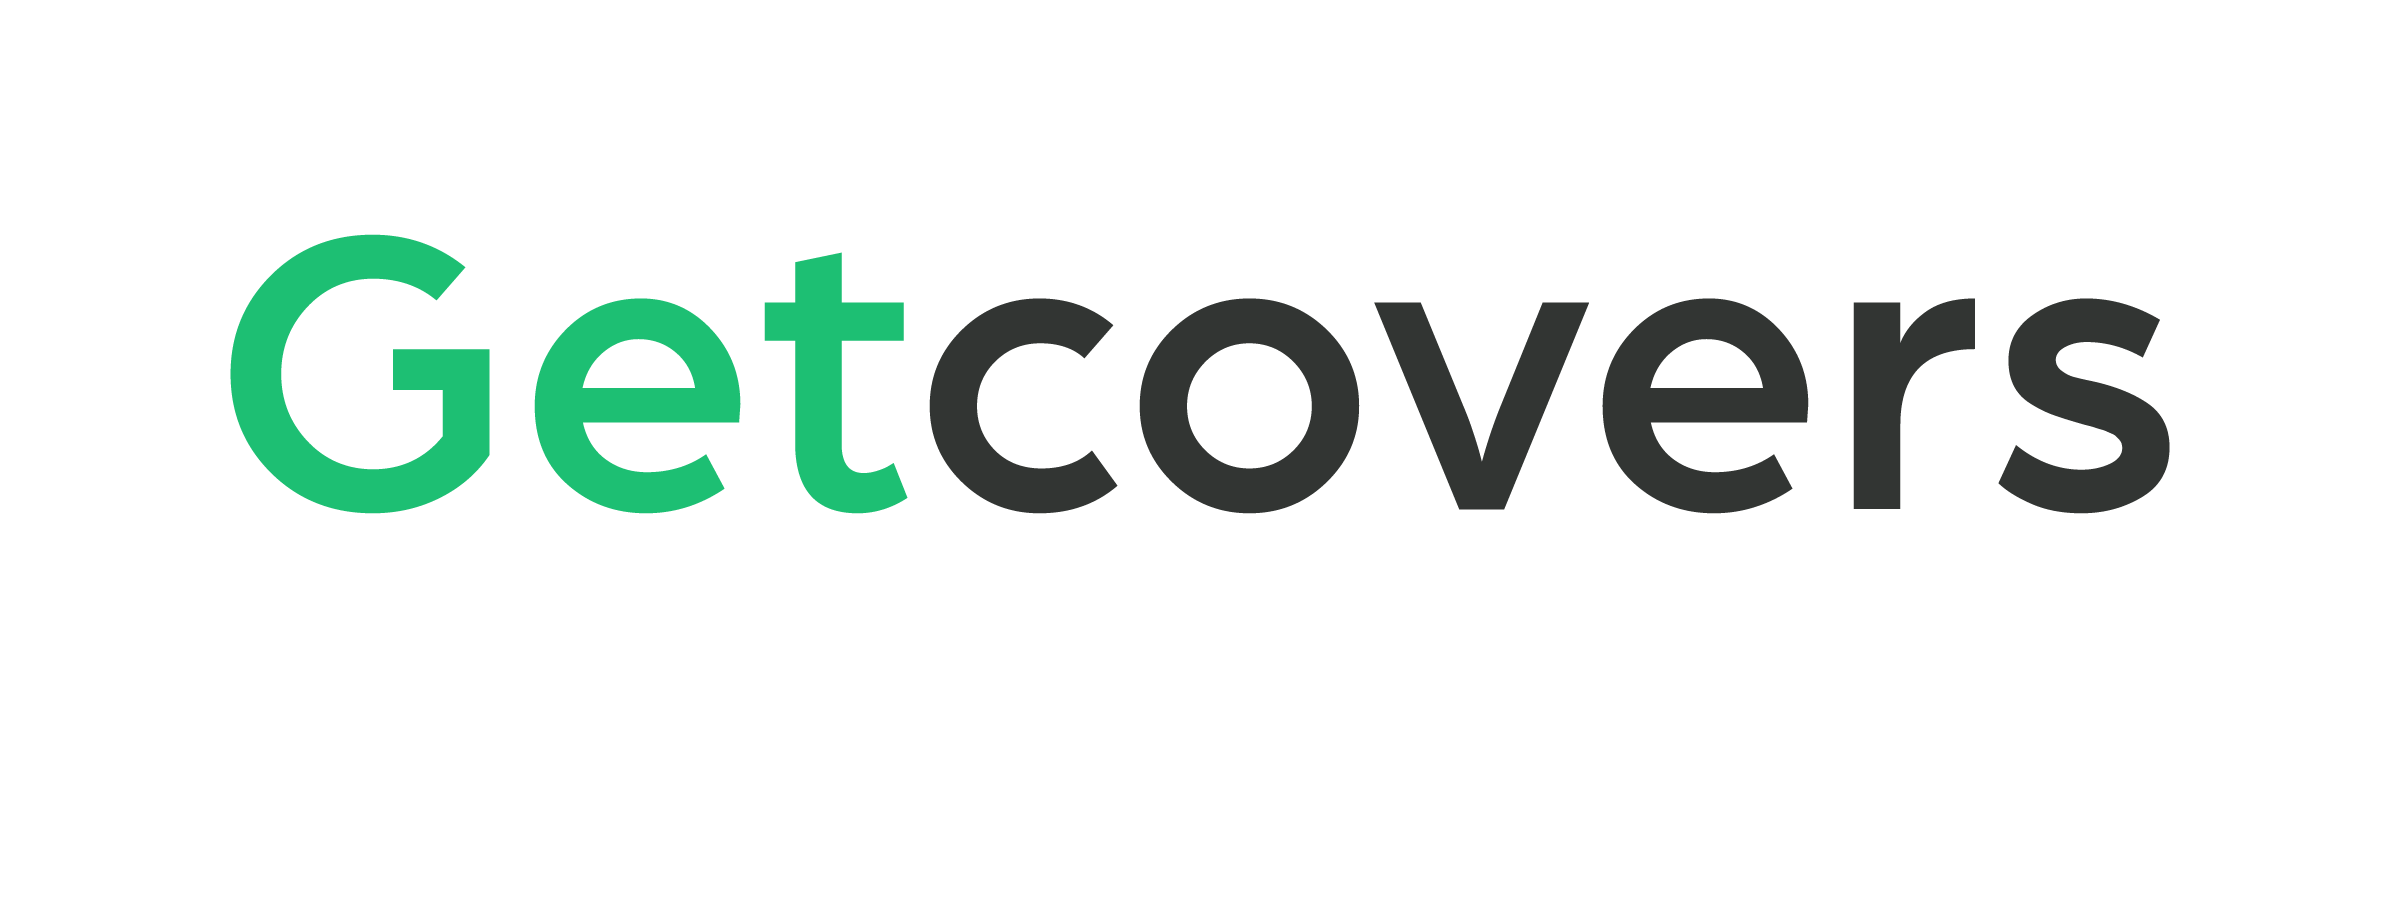 Getcovers